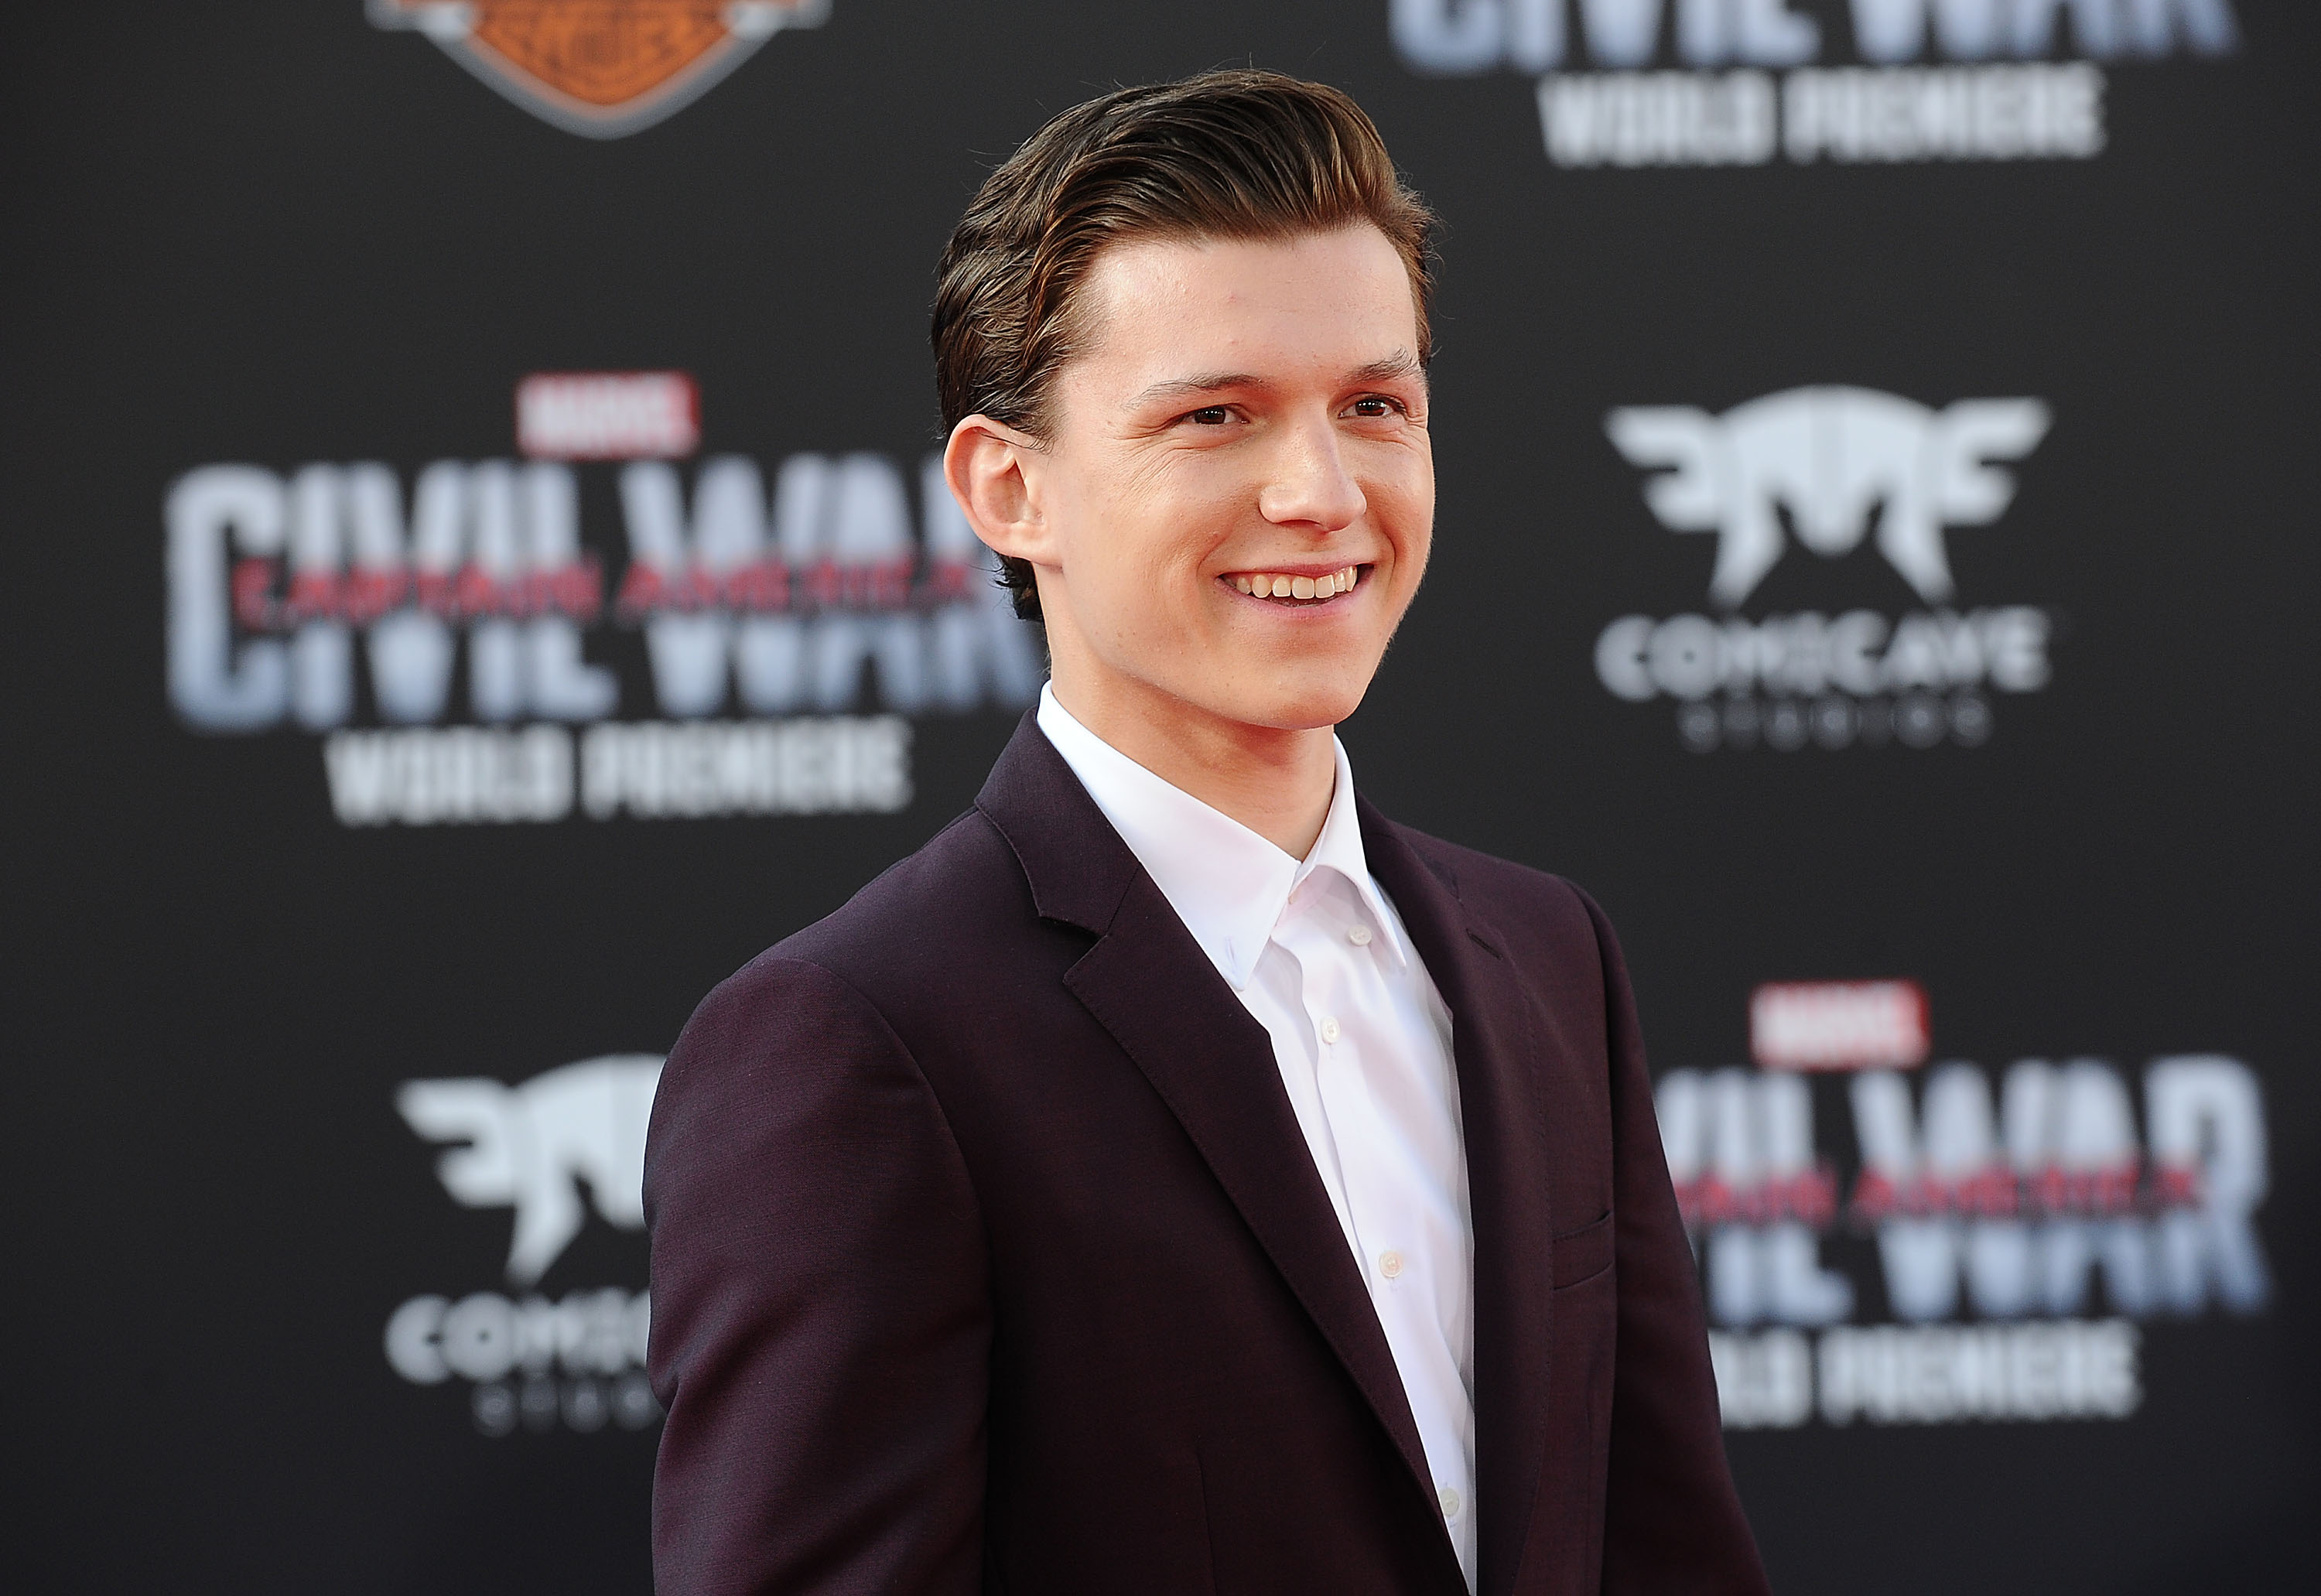 Actor Tom Holland attends the premiere of  Captain America: Civil War  at Dolby Theatre on April 12, 2016 in Hollywood, California.